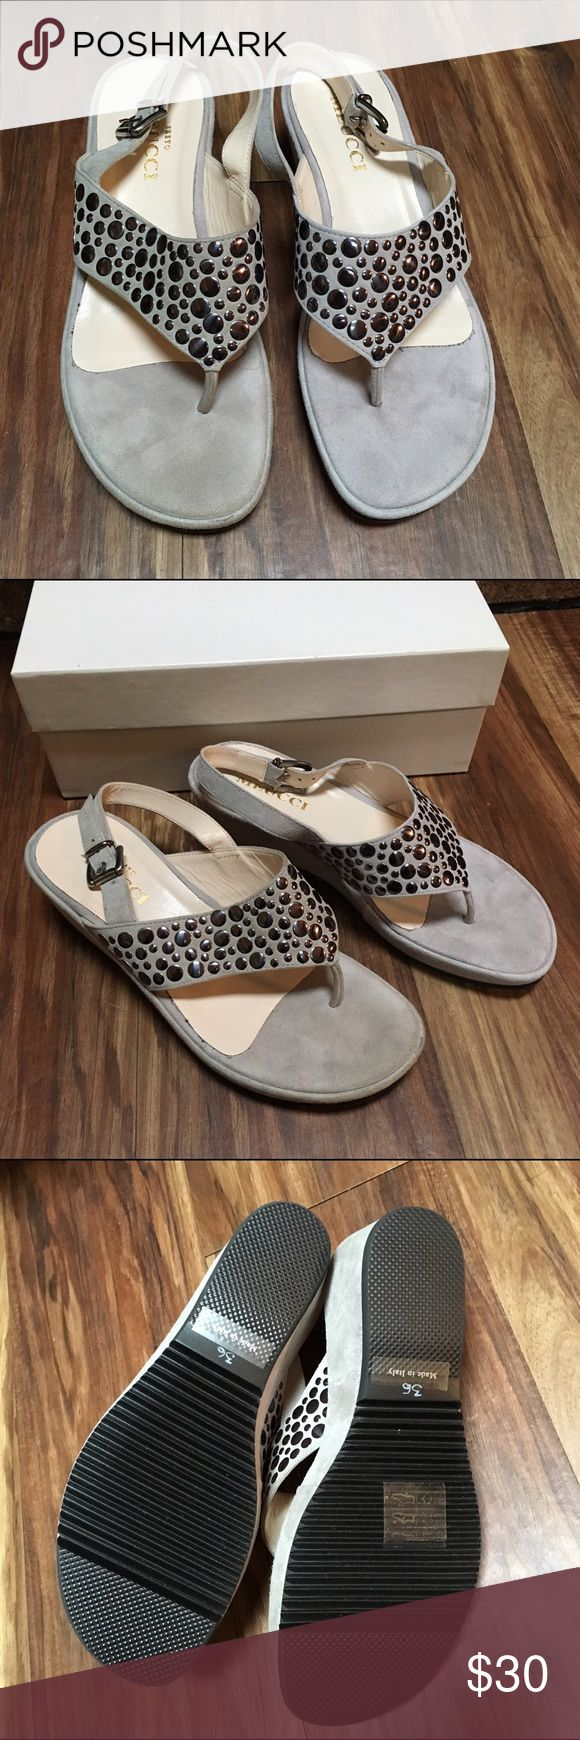 *Charity* Sesto Meucci Suede Studded Sandals 6 **100% of this sale will benefit WV flood victims who are still displaced in tents and campers during the cold winter months. It will help with portable heaters, blankets, carbon monoxide detectors and other winterization needs**    Grey/Taupe suede by Sesto Meucci (Nordstroms) Dark silver studs. Very little wear, one scuff or dirty spot on front of toe (see pic). This may come off with a suede brush. Sesto Meucci Shoes Sandals